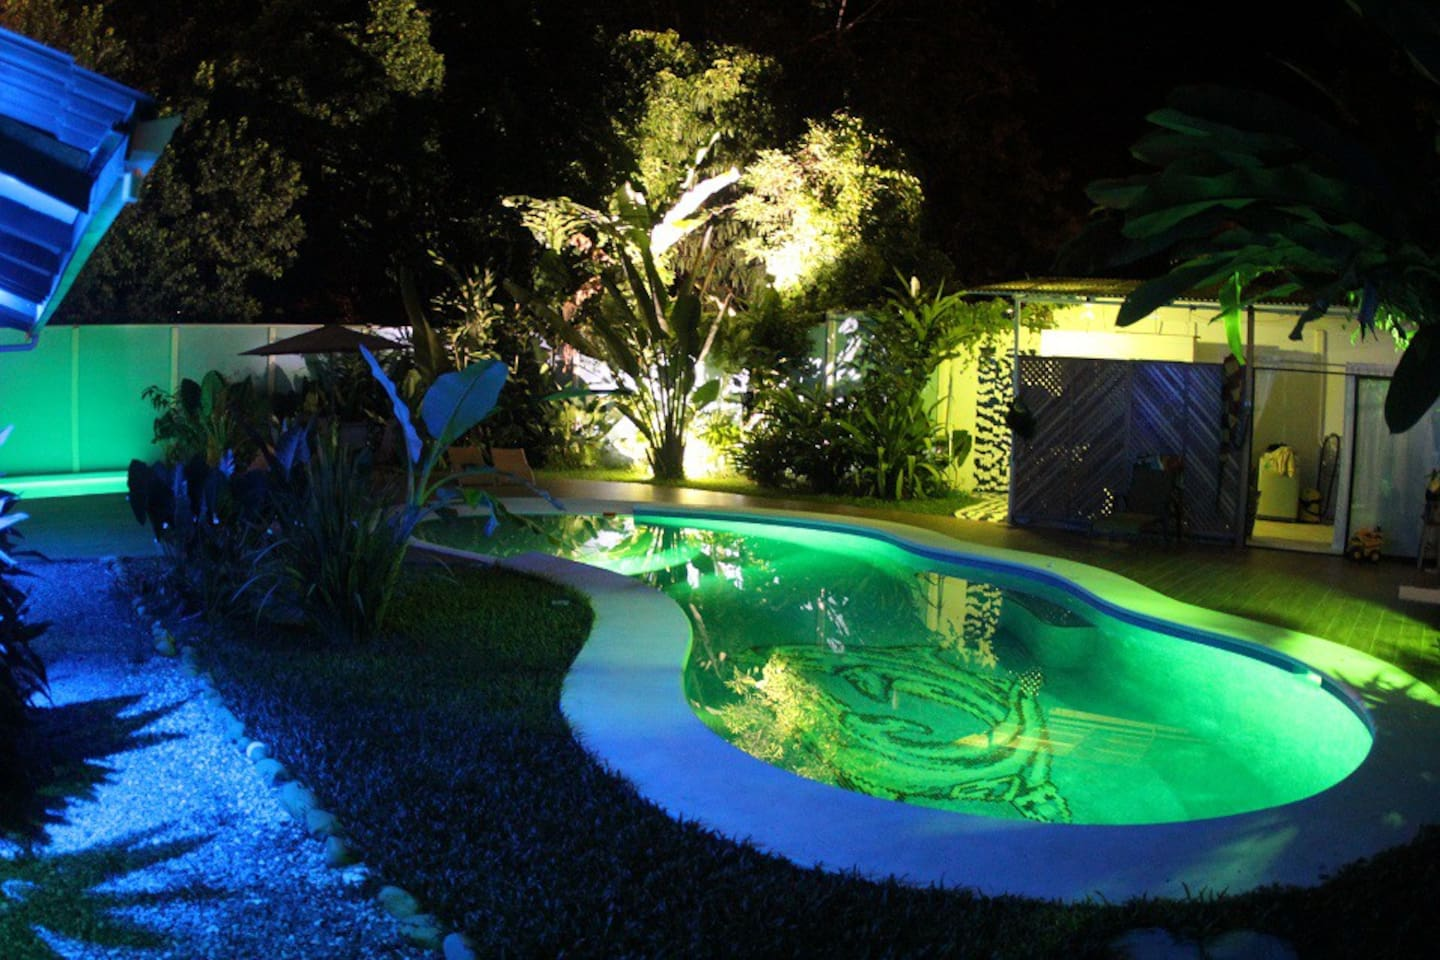 Our big pool at night!